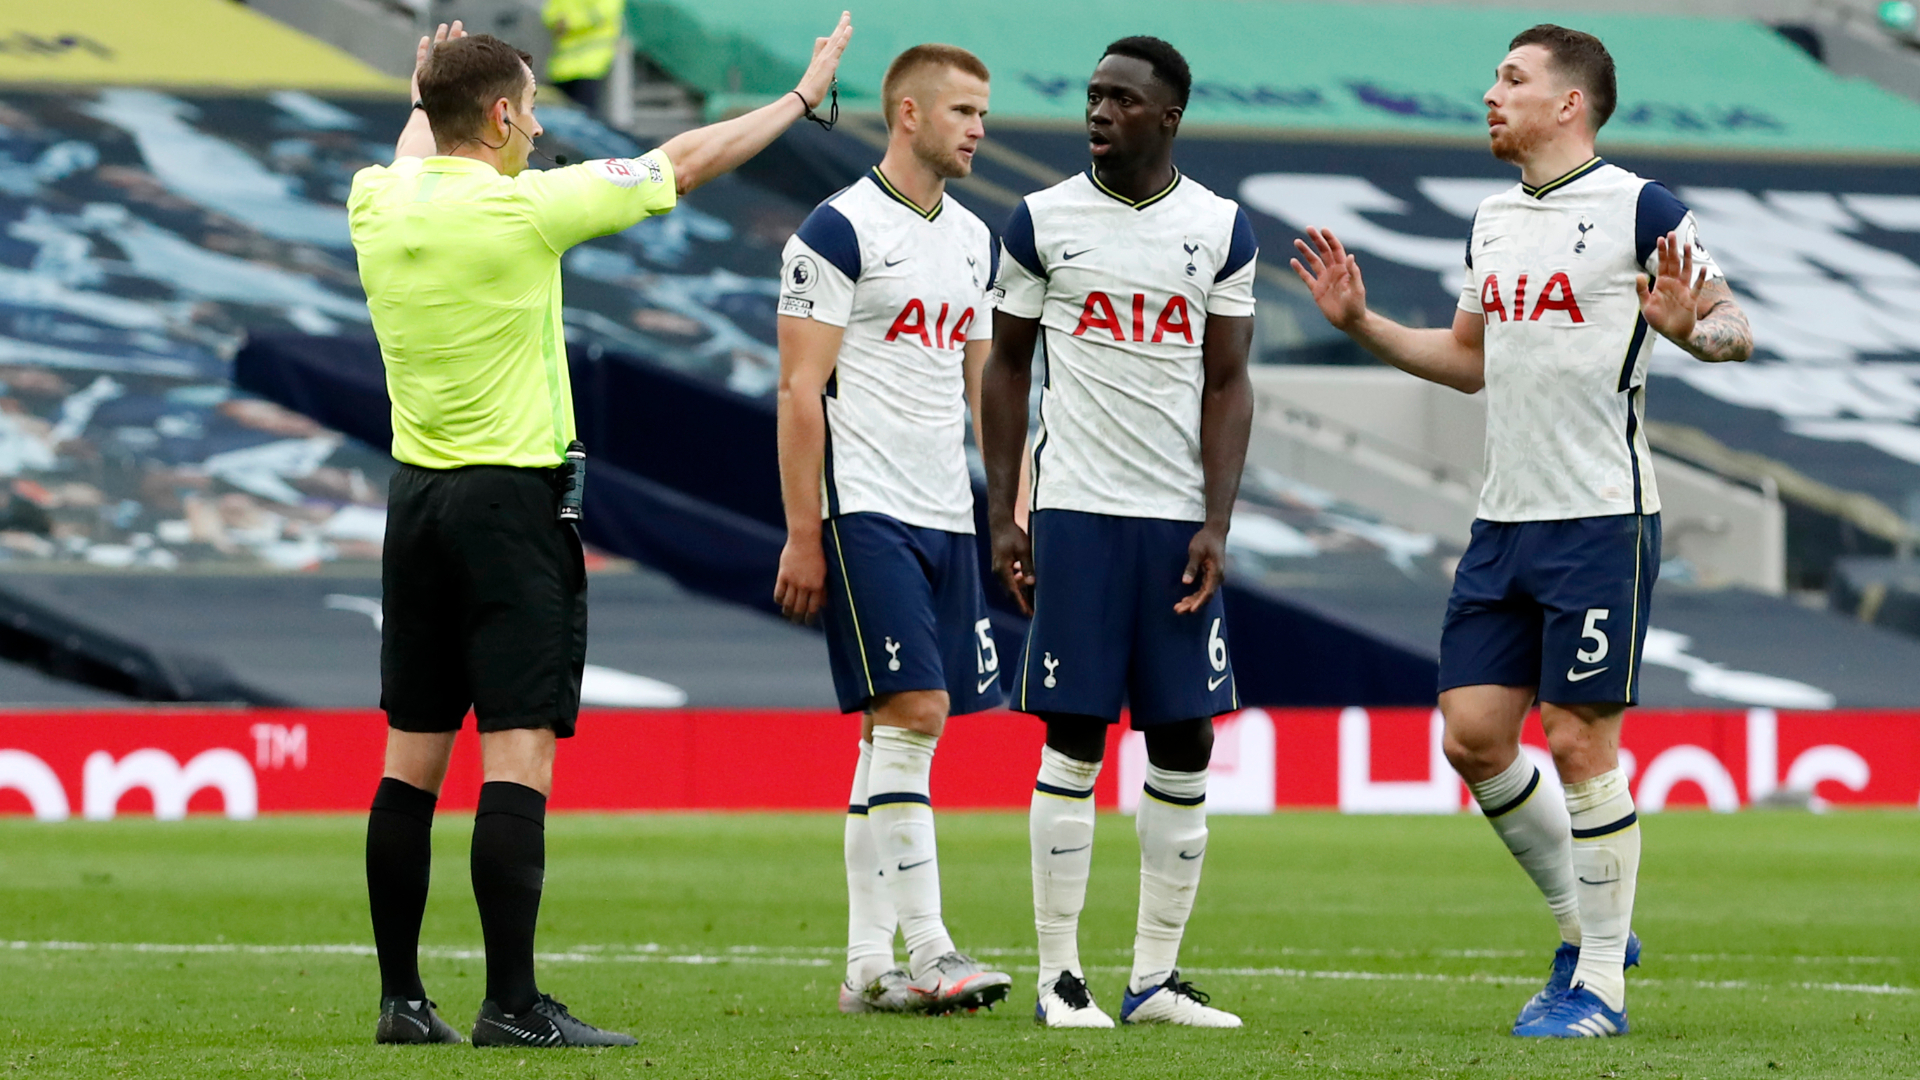 Tottenham vs West Ham United ZEbet Tips: Latest odds, team news, preview  and predictions